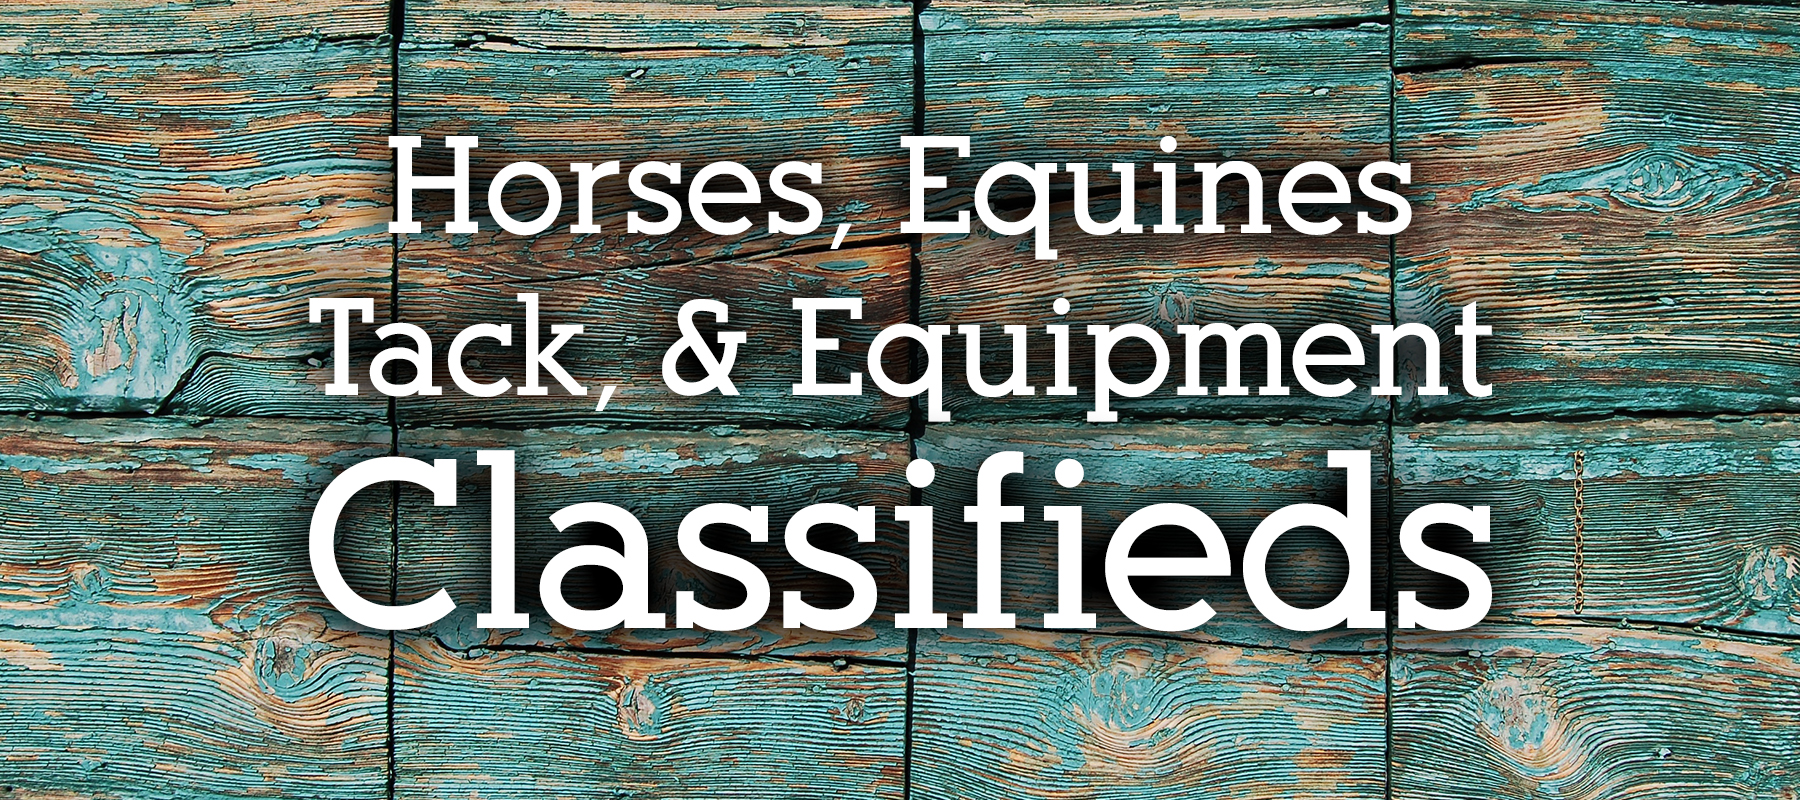 Classifieds for Horses, Equines, Tack, and Equipment in Colorado